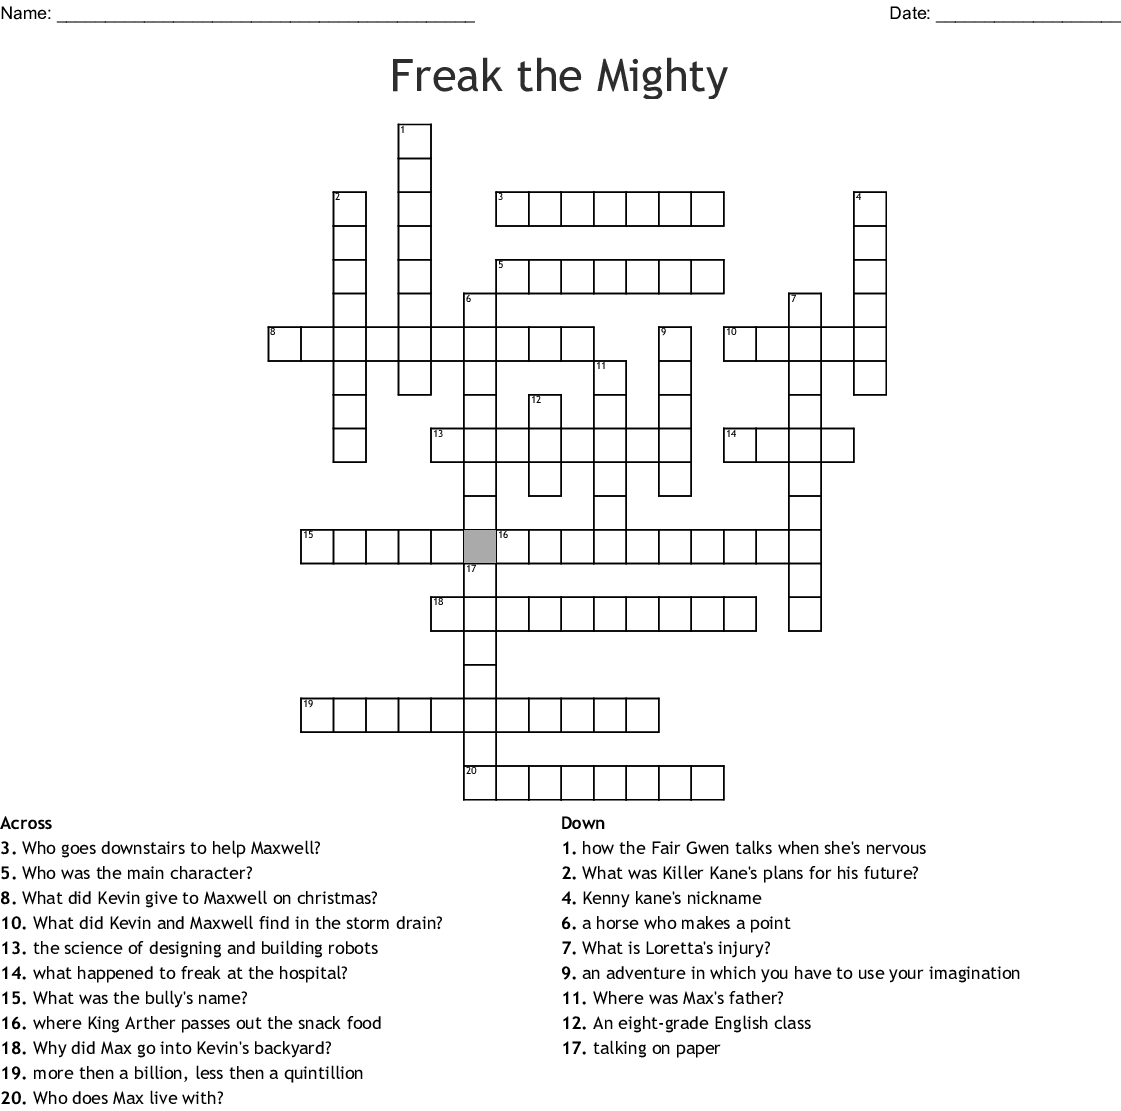 Freak The Mighty Crossword